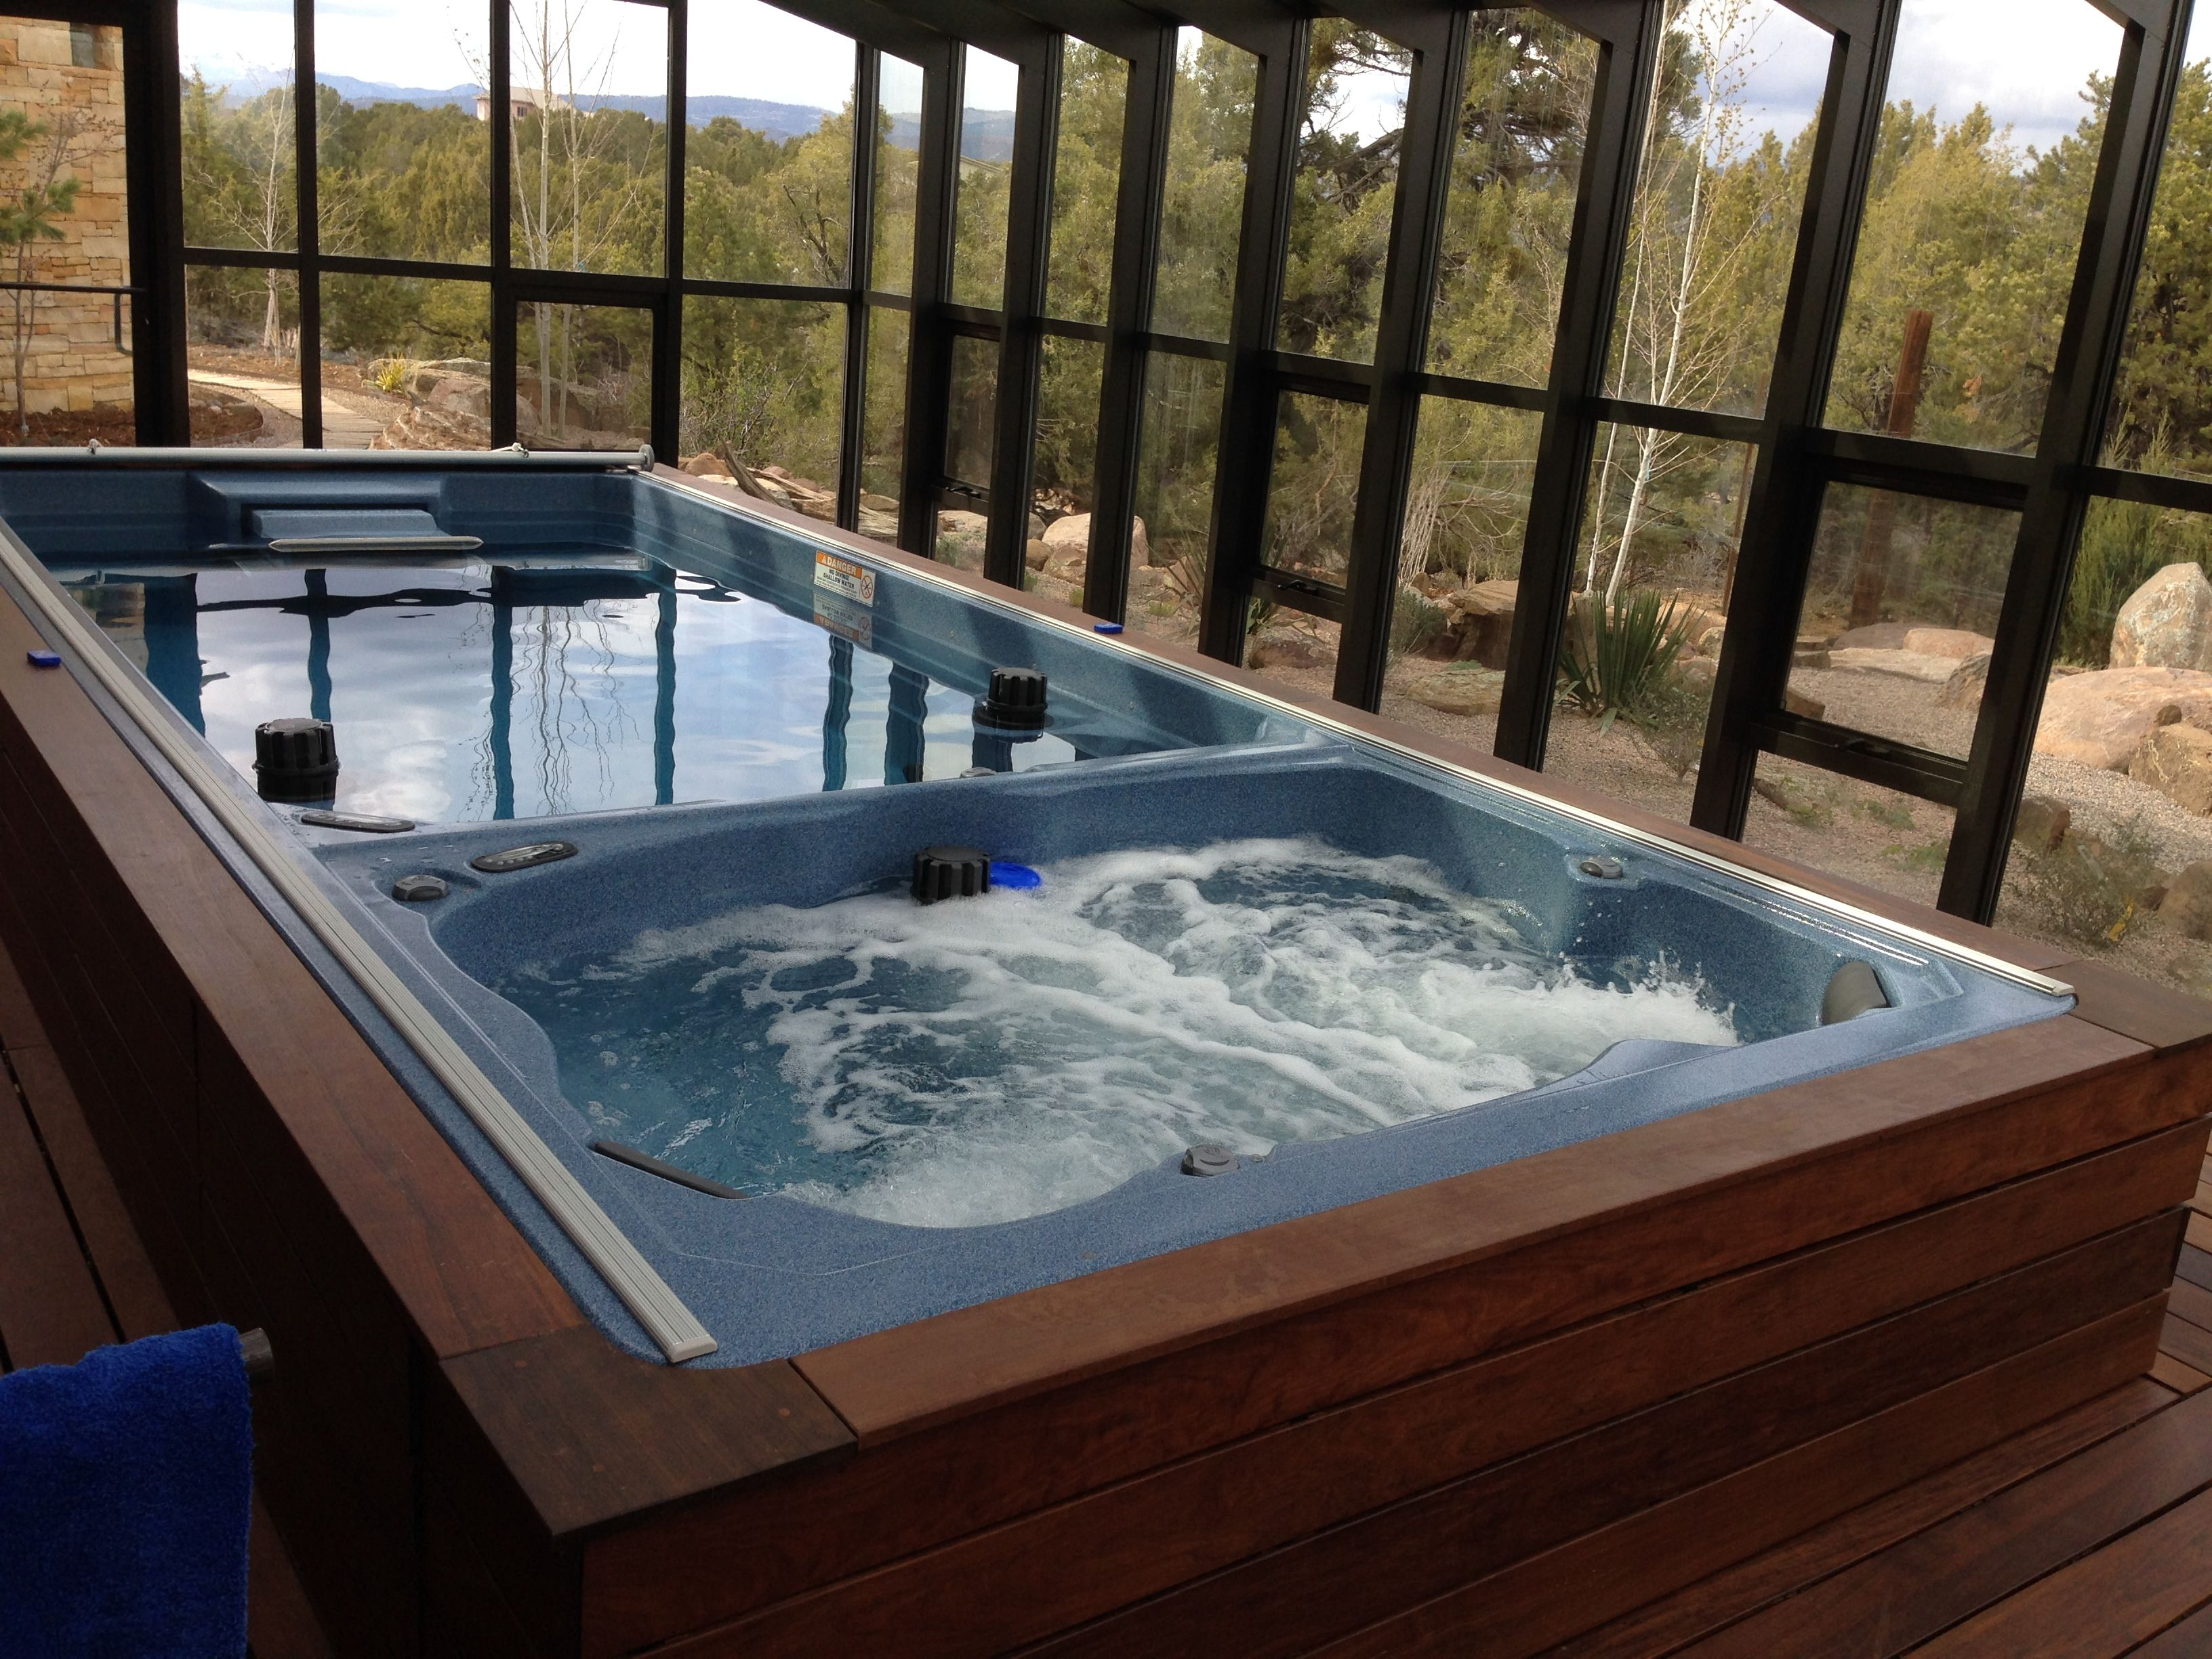 Swimming Spa And Hot Tub All In One The Endless Pools Dual Temp Swim Spa Delivers The Best Of